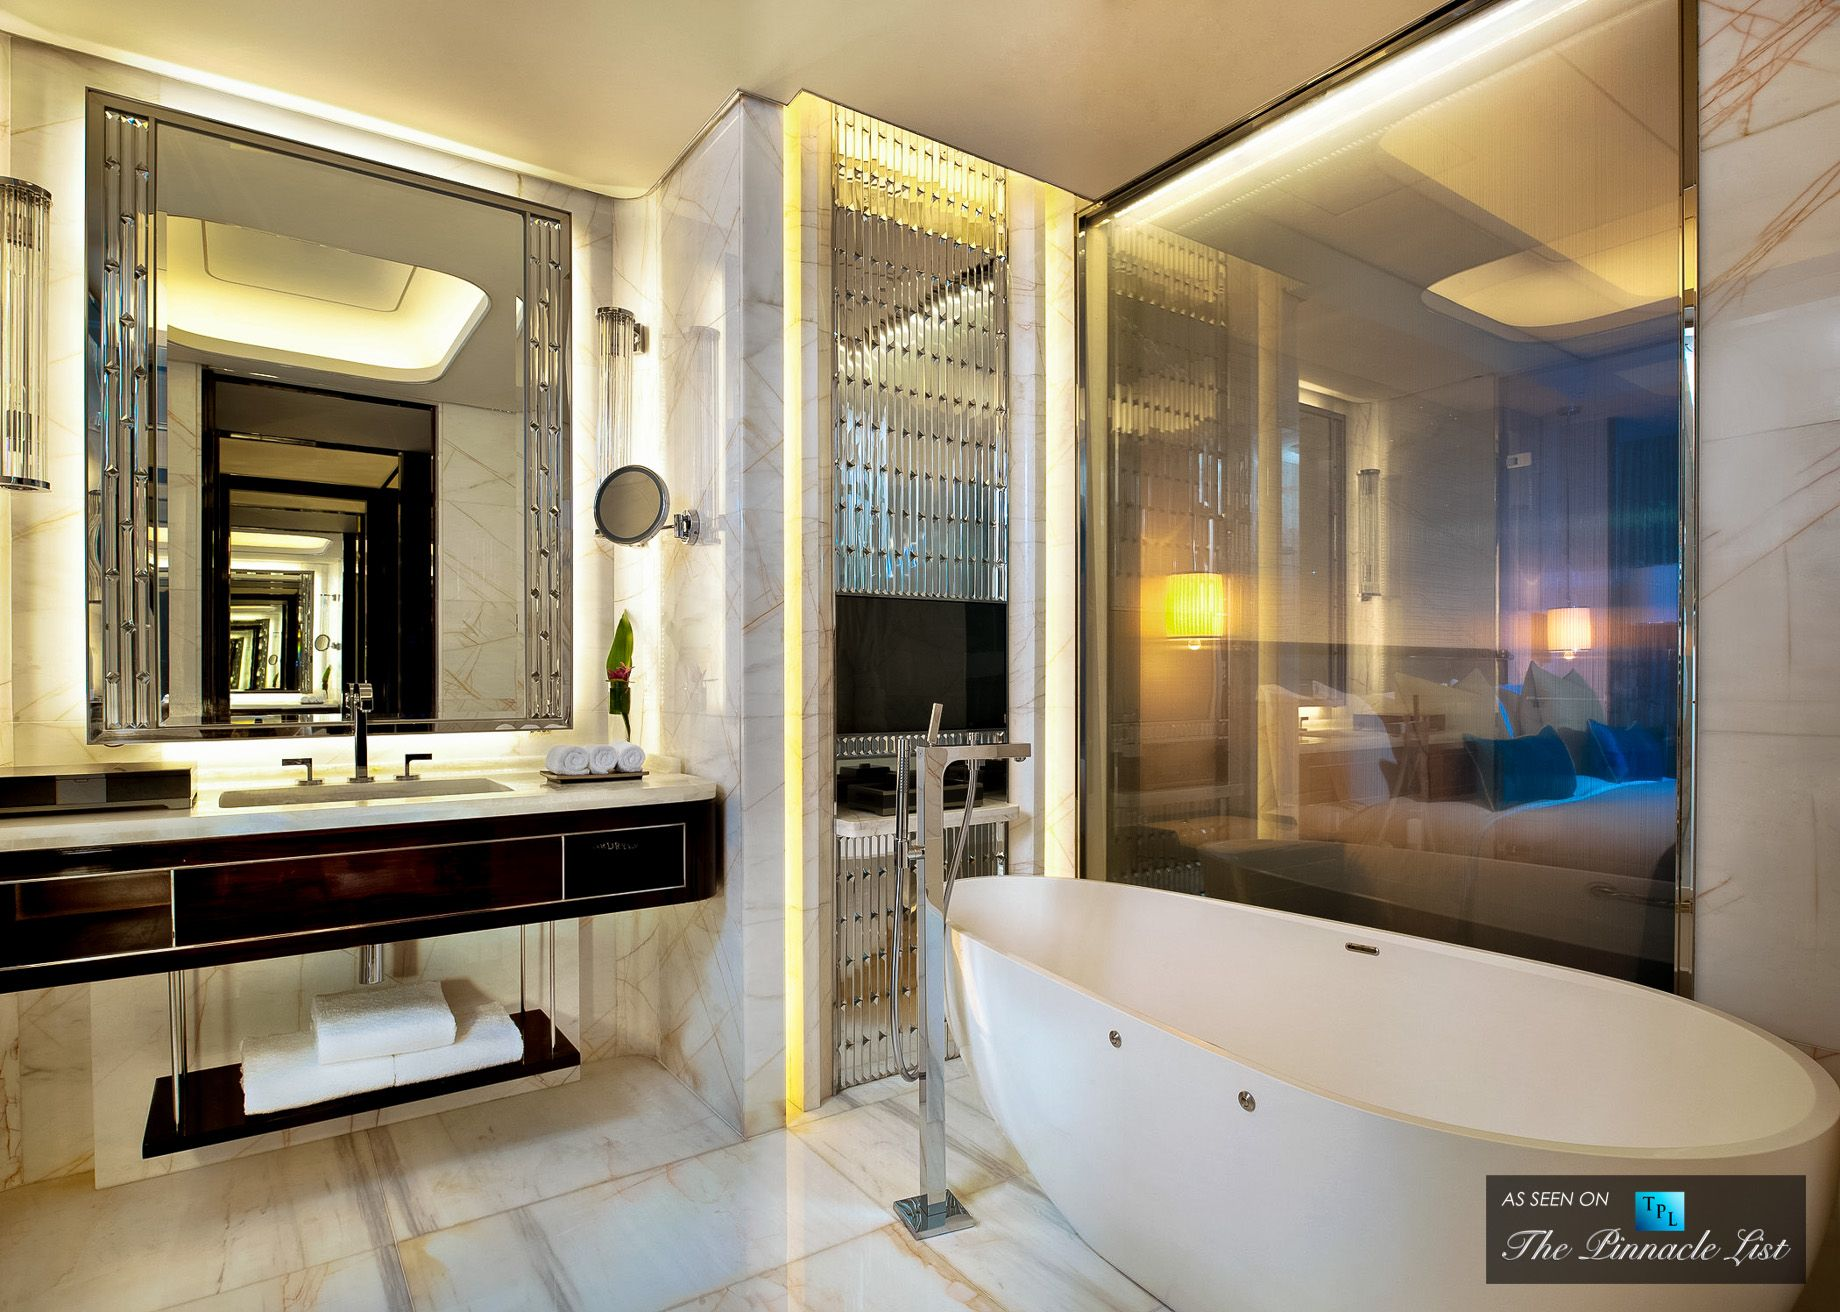 St. Regis Luxury Hotel - Shenzhen China Deluxe Bathroom